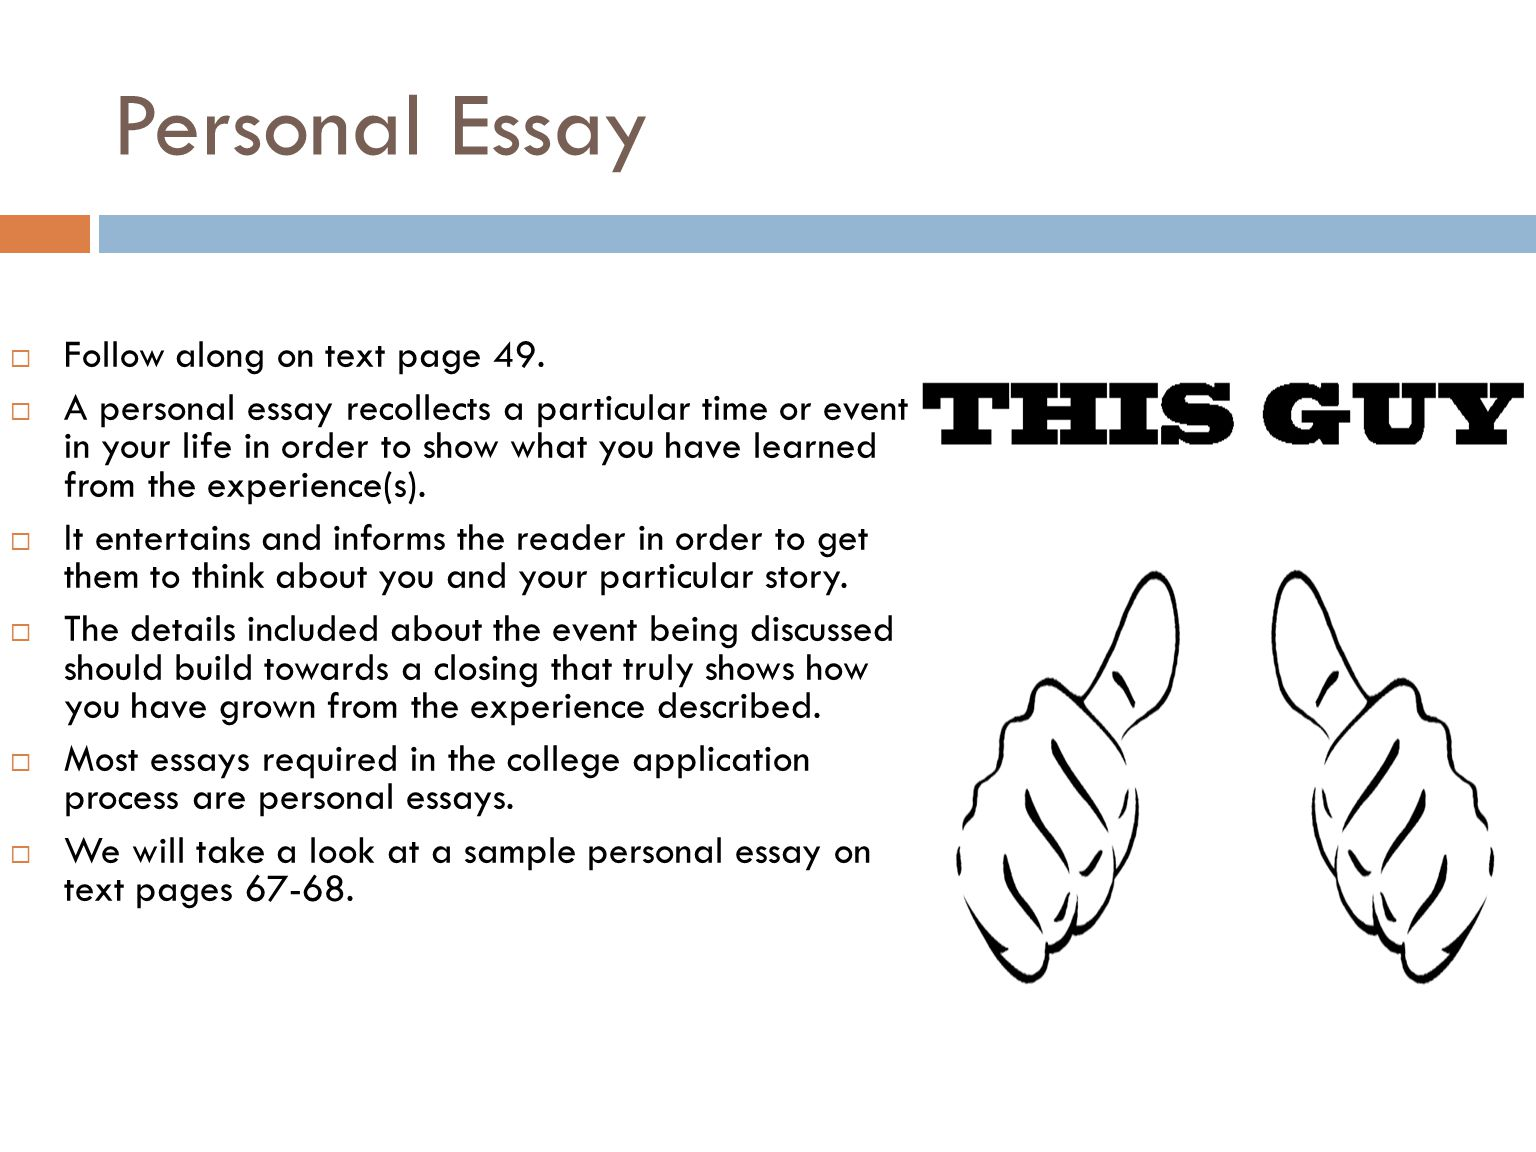 Personal experience essay